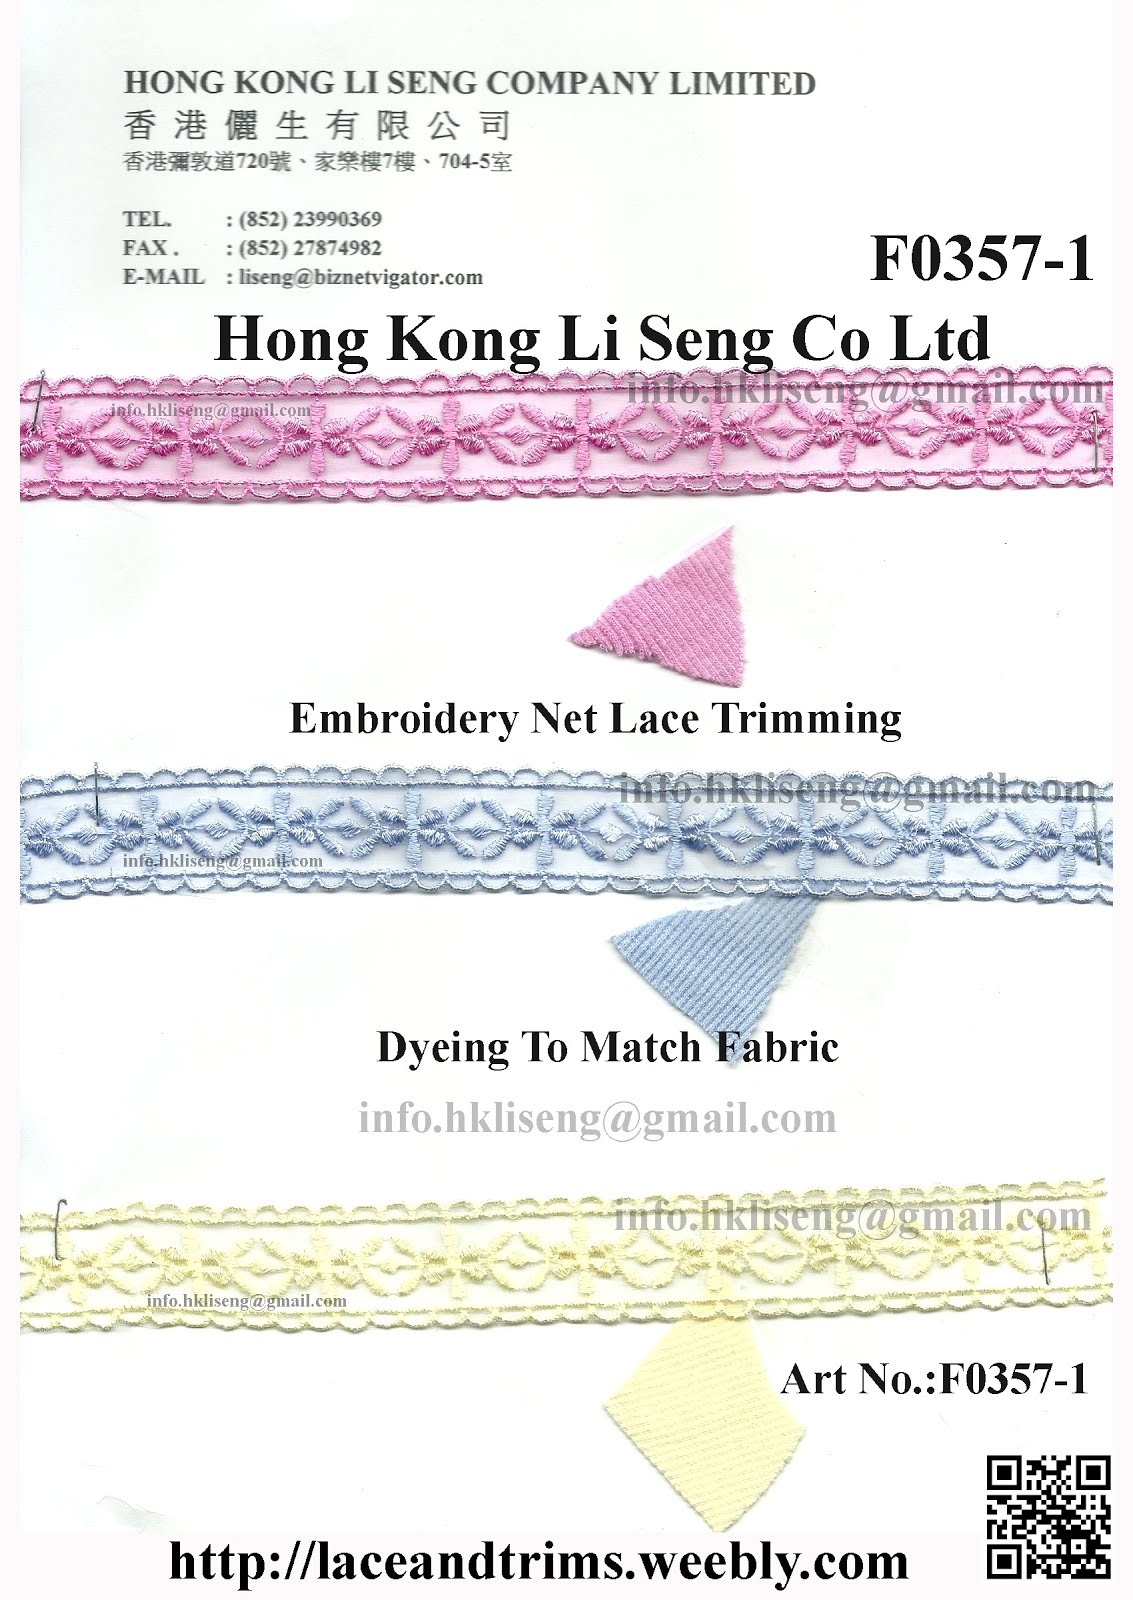 Embroidery Net Lace - Match Fabric Color